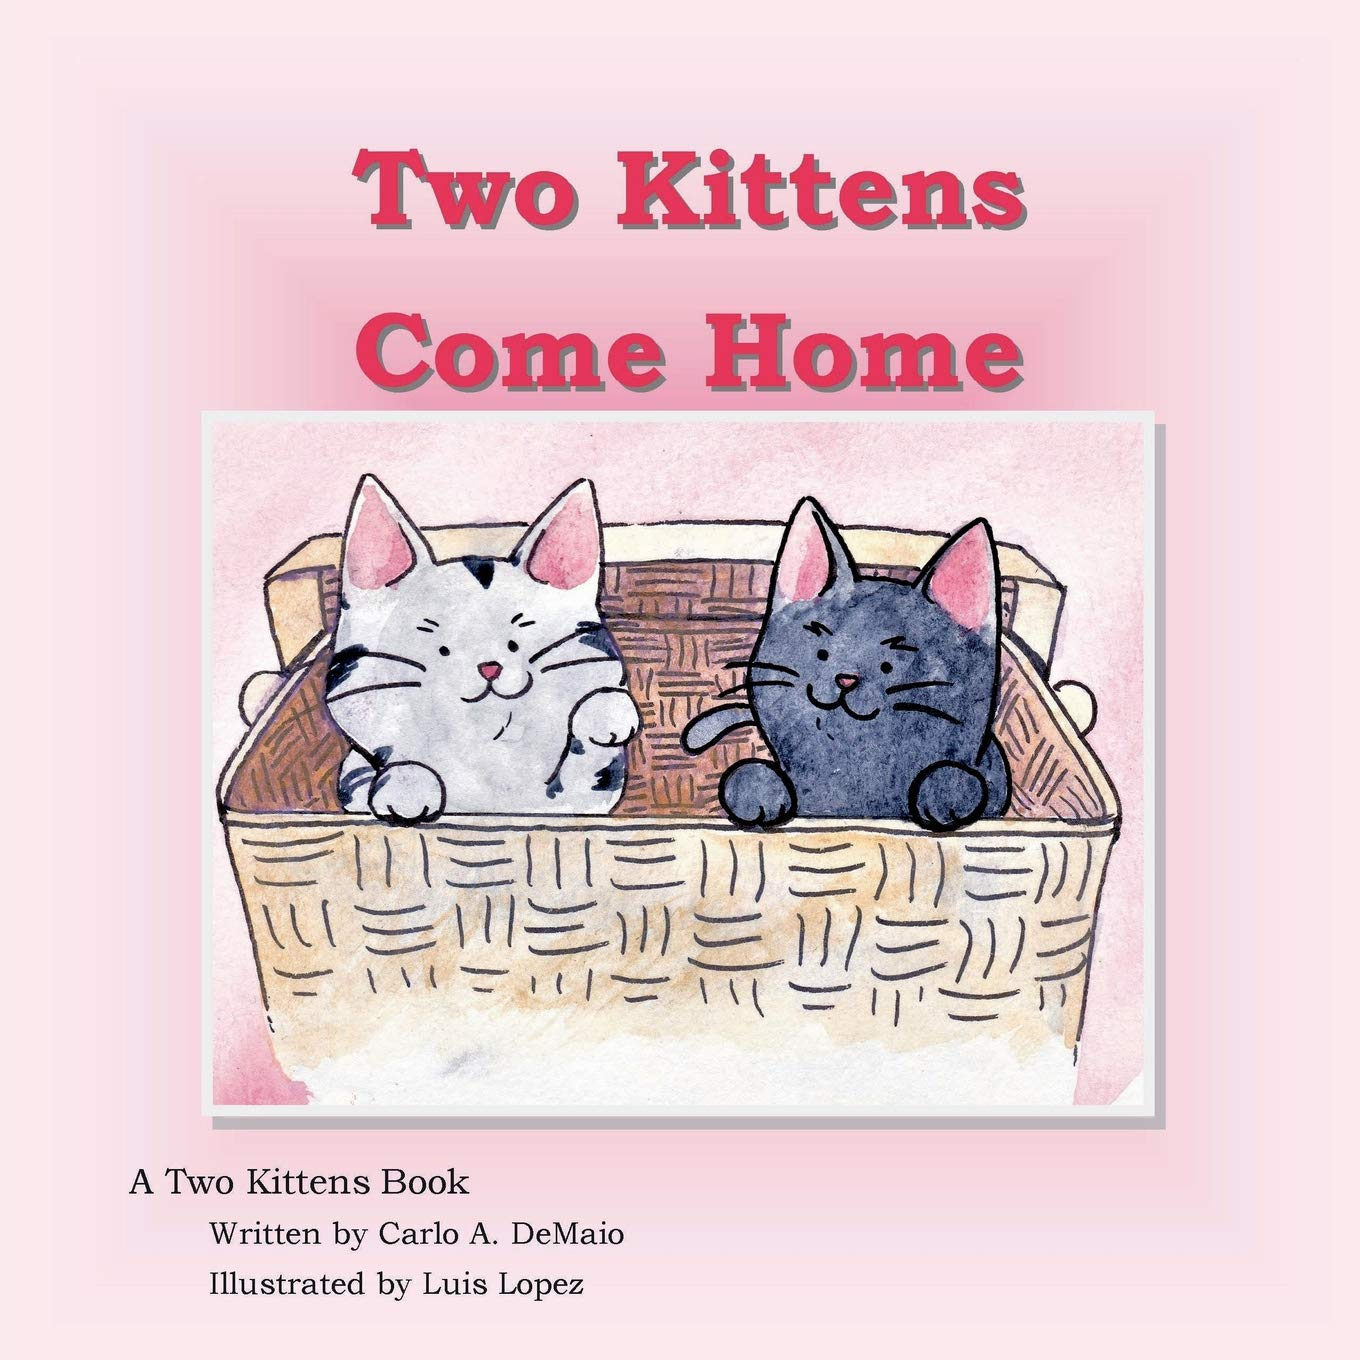 Download Two Kittens Come Home (A Two Kittens Book) ebook